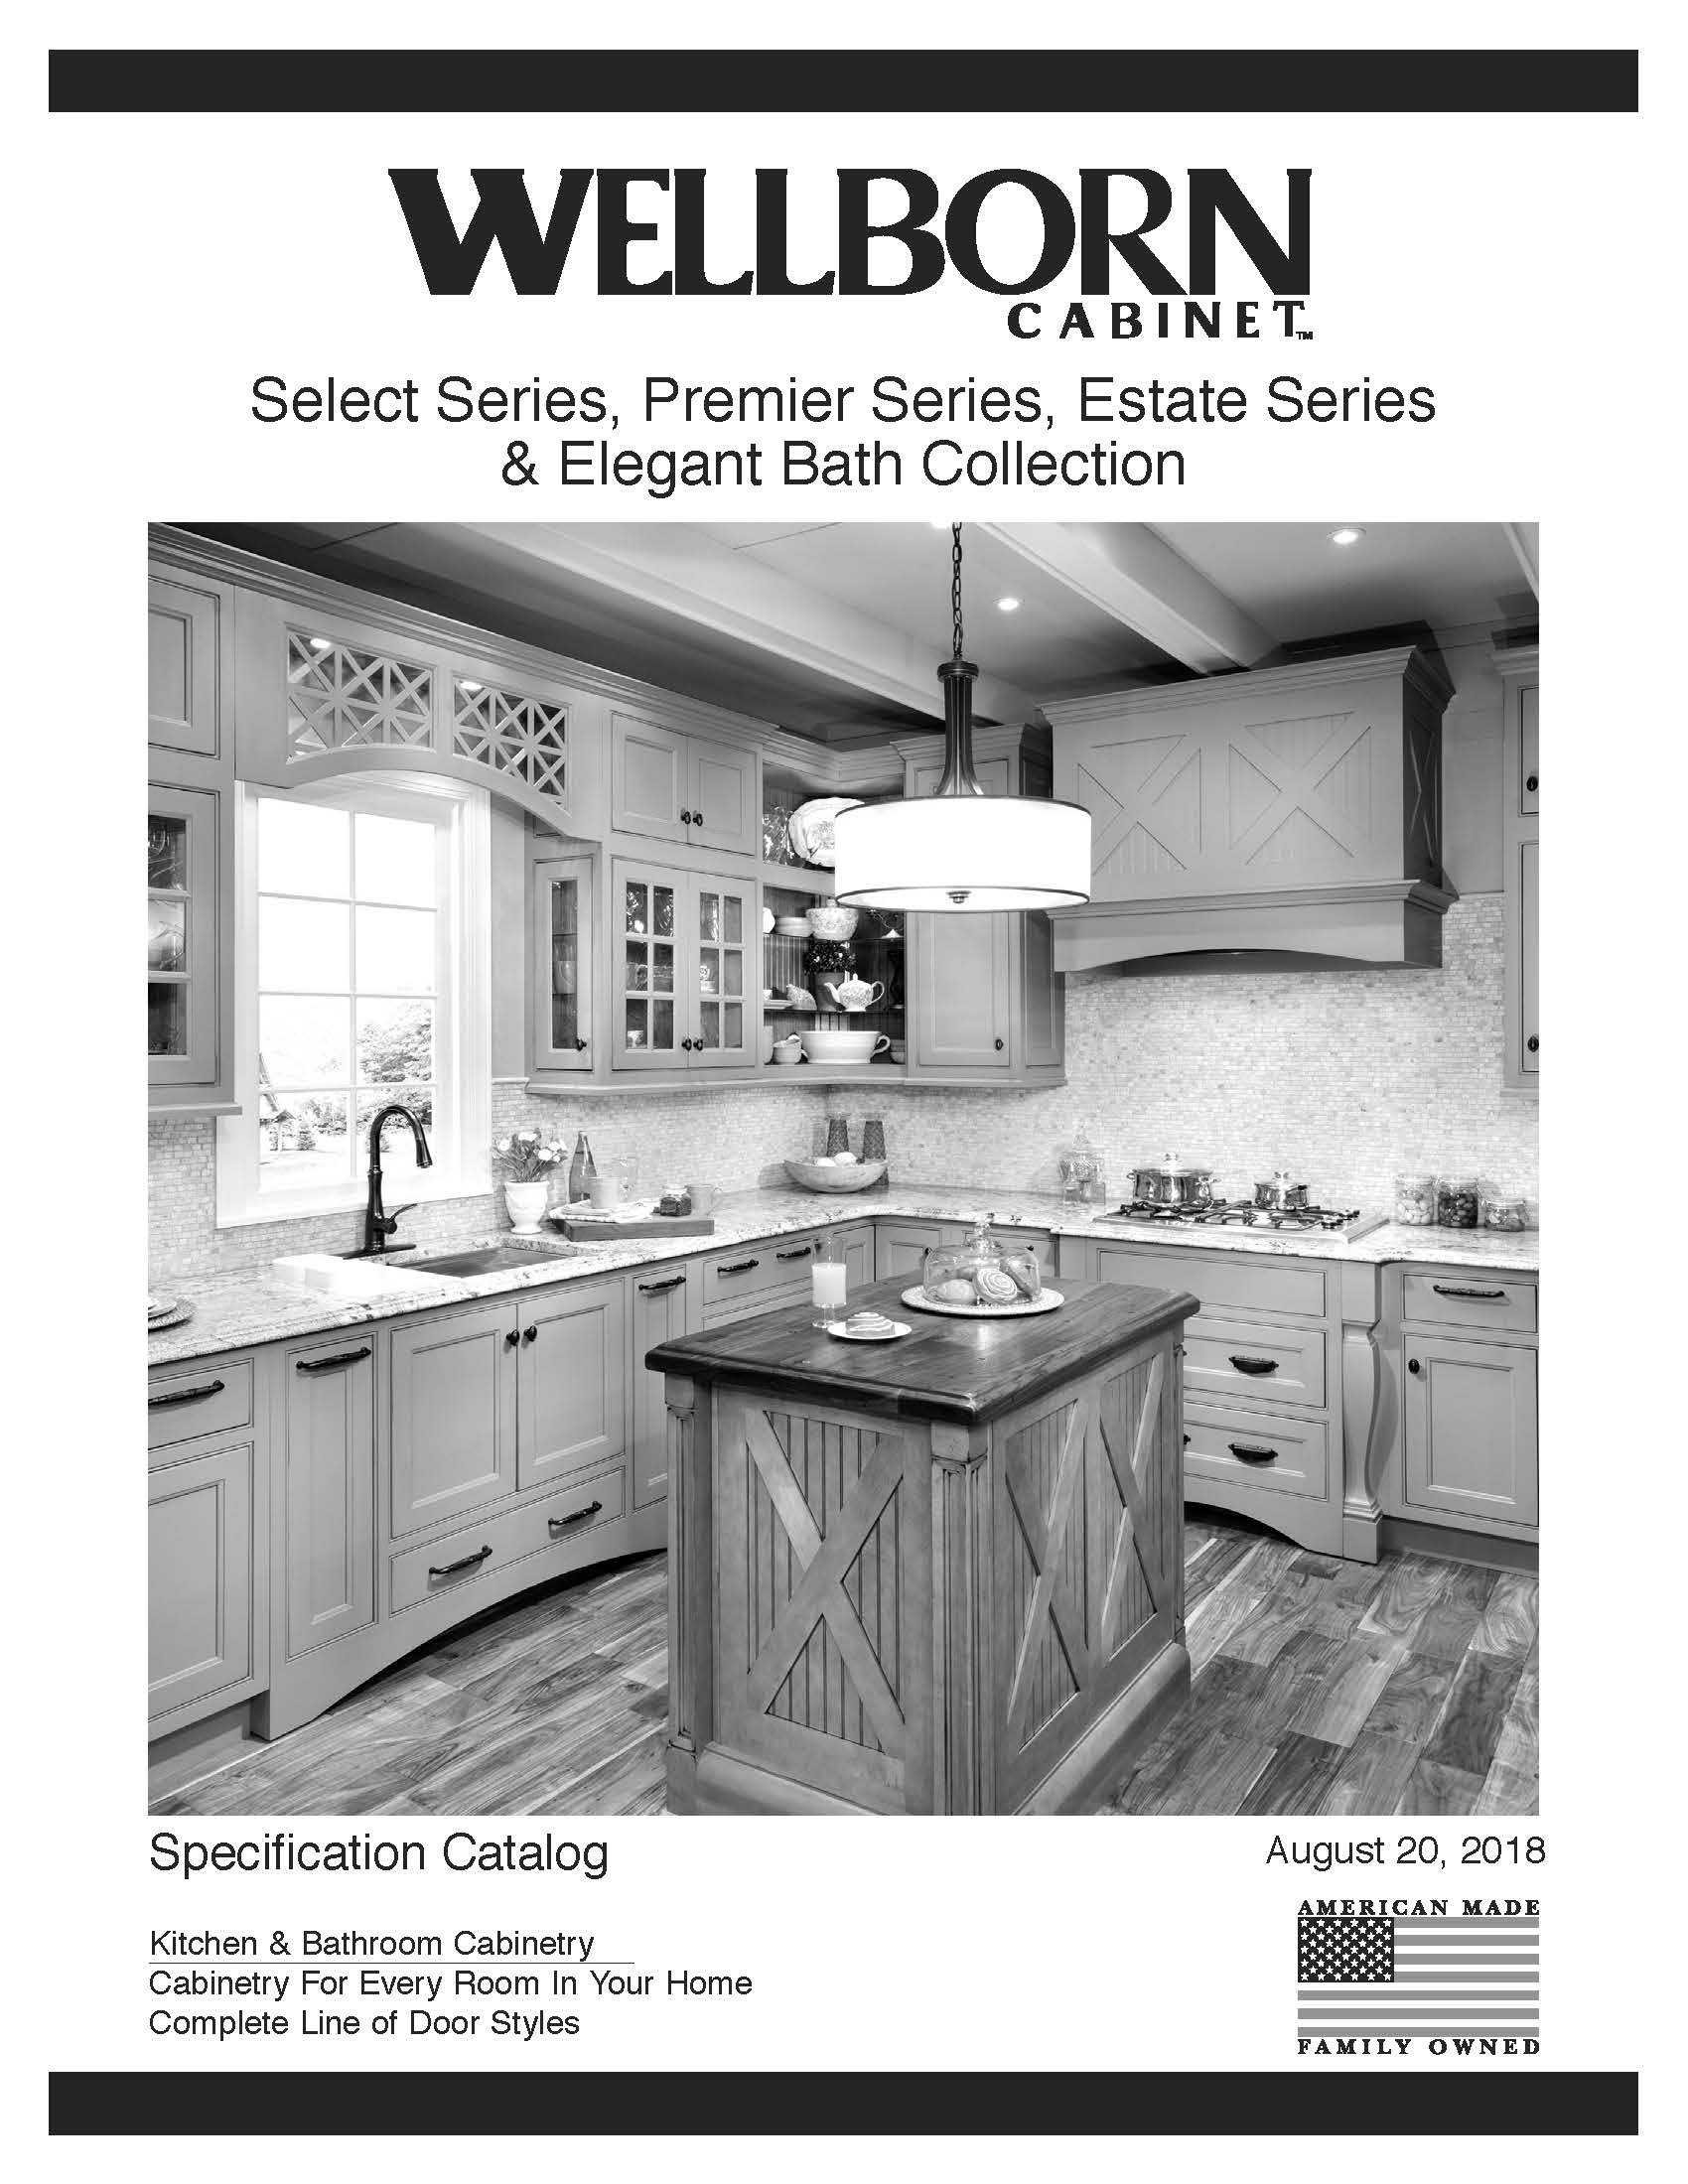 Wellborn Premier & Select Specification Catalog - Contains Cabinet Construction, Semi Custom Options, Door Styles, Finishes, Cabinet Size Information, Accessory Information